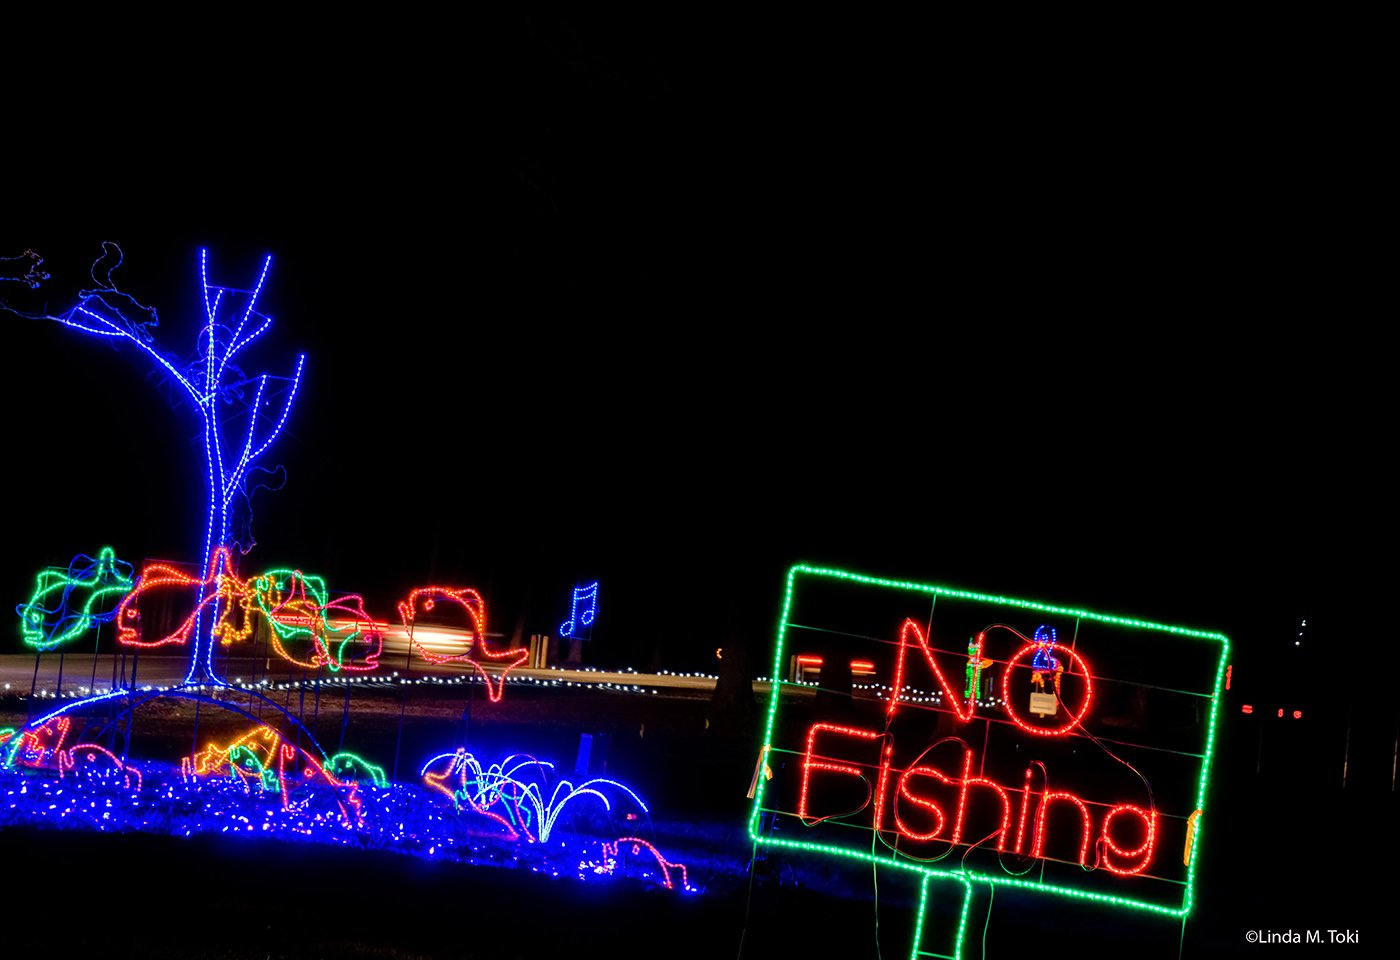 Photo: Bull Run Festival of Lights, photo by Linda M. Toki